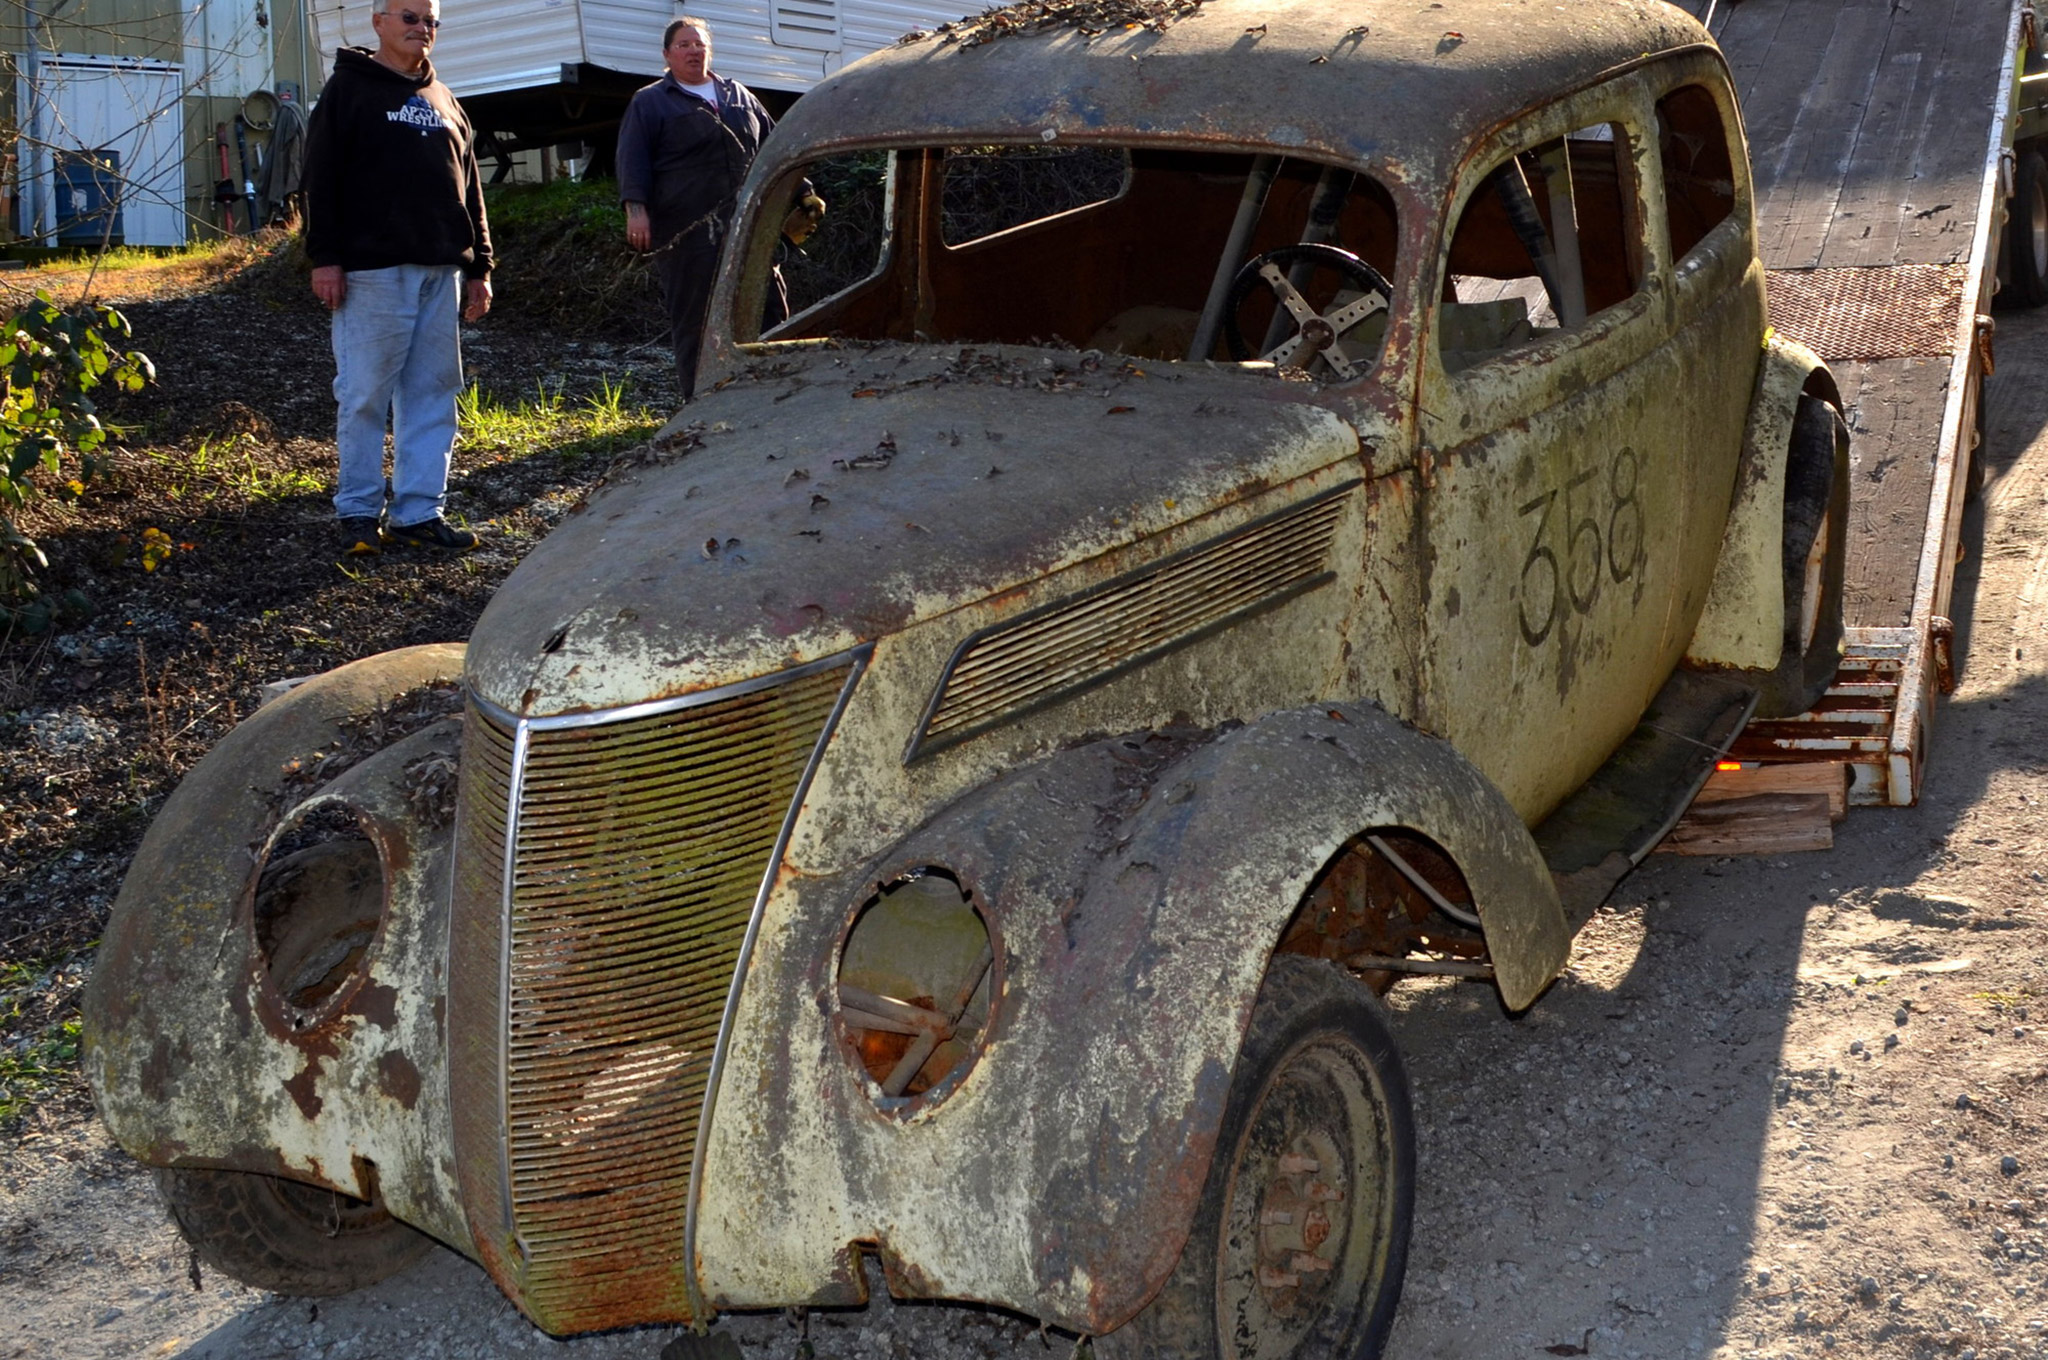 Aside from being covered in moss, the car had very little body damage when it was pulled from its 50-year hibernation. There were some bad rust spots in the lower areas of the car, but otherwise it was relatively rust-free, amazing considering it was in storage in damp air close to the ocean for years.  (photo: Joe Hickenbottom)